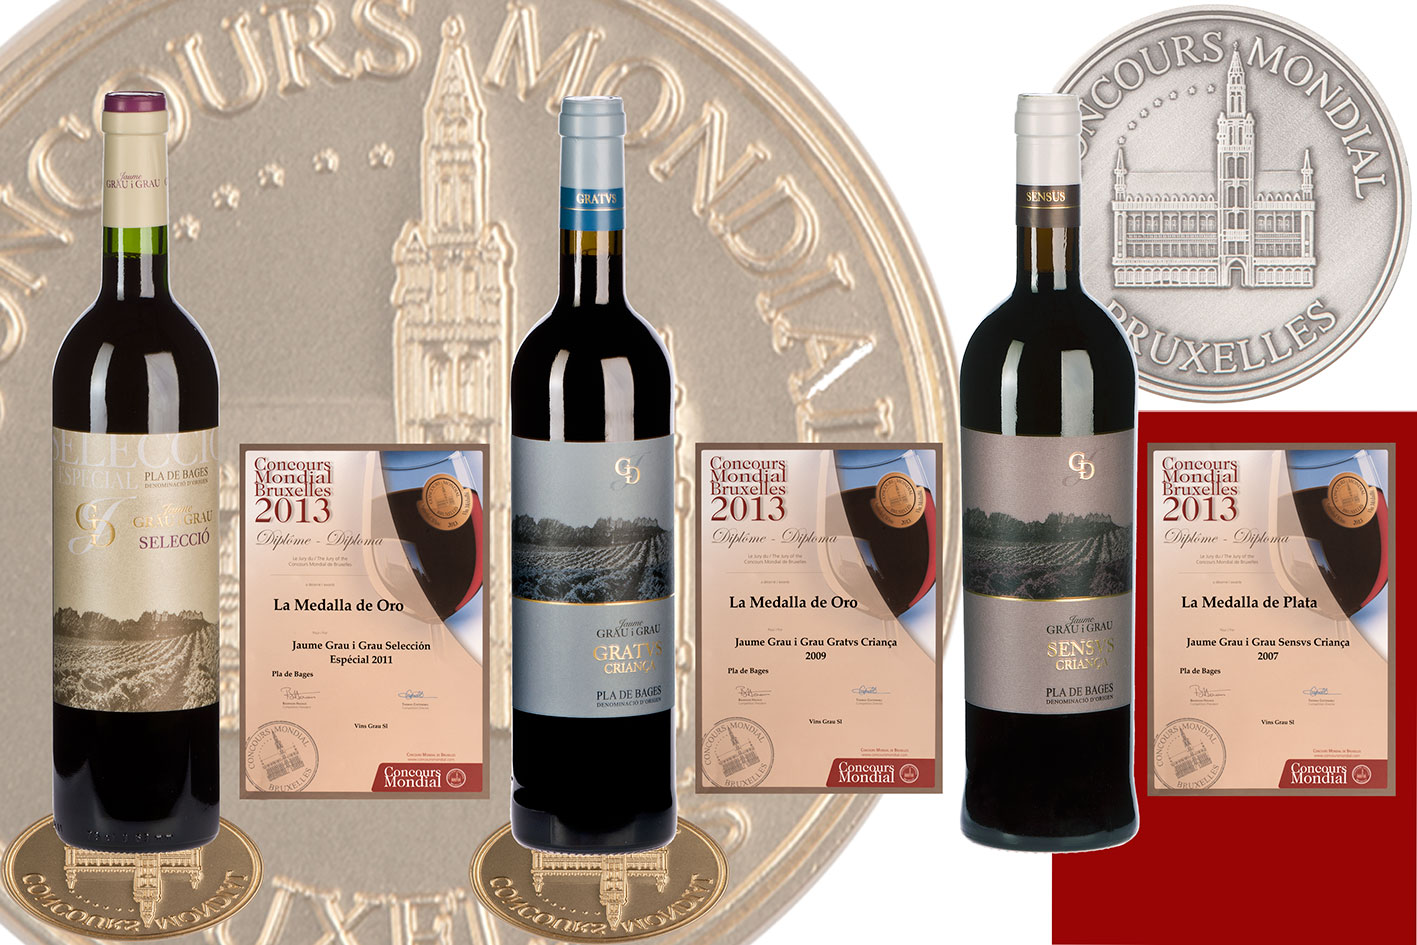 Vins Grau is awarded in the Concours Mondial de Bruxelles 2013